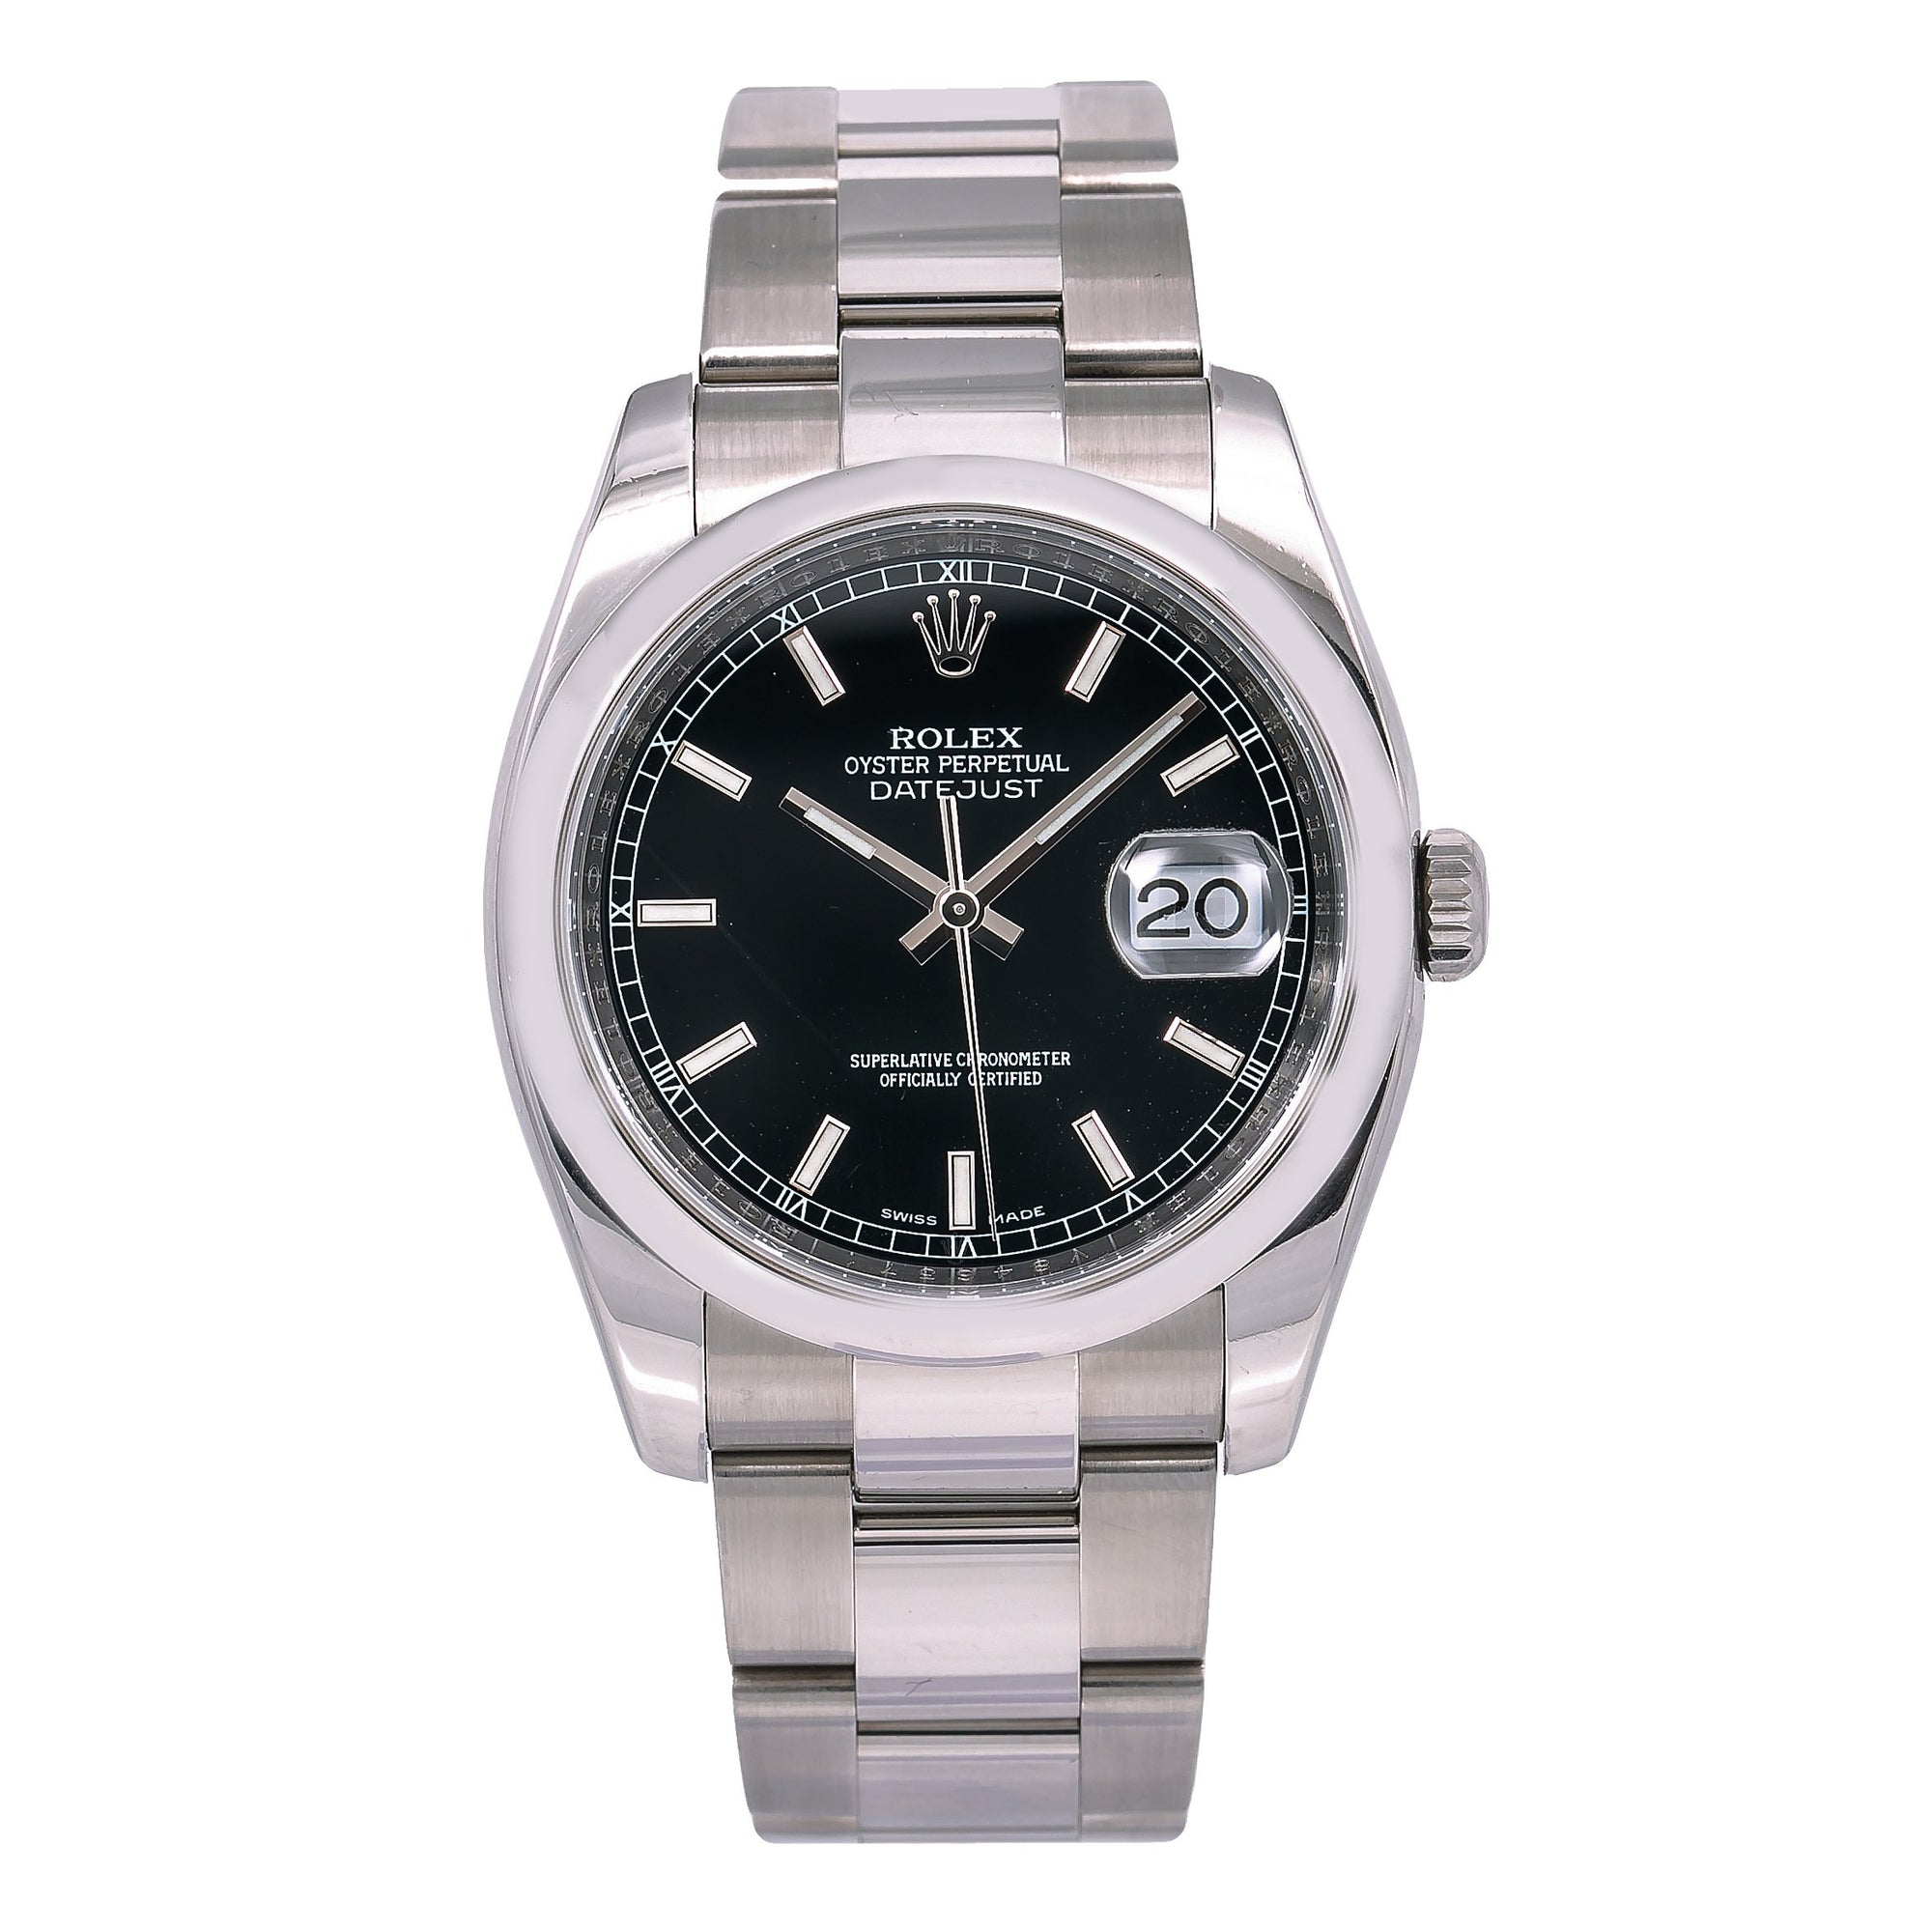 Rolex Datejust 116200 36MM Black Dial With Stainless Steel Oyster Bracelet